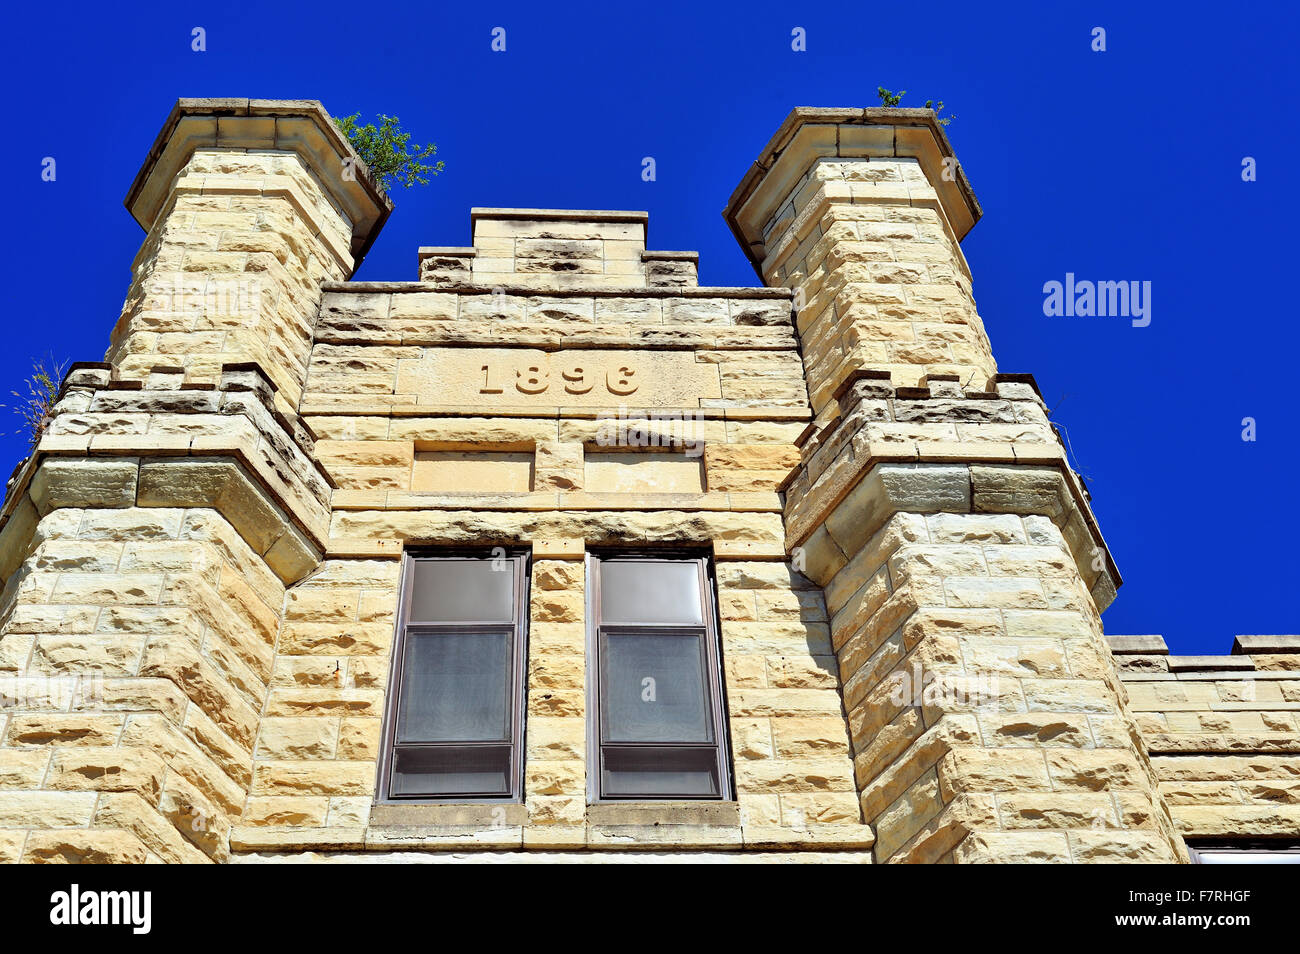 A building added in 1896 at the Joliet Correctional Center (also known as Illinois State Penitentiary and Joliet - Stock Image